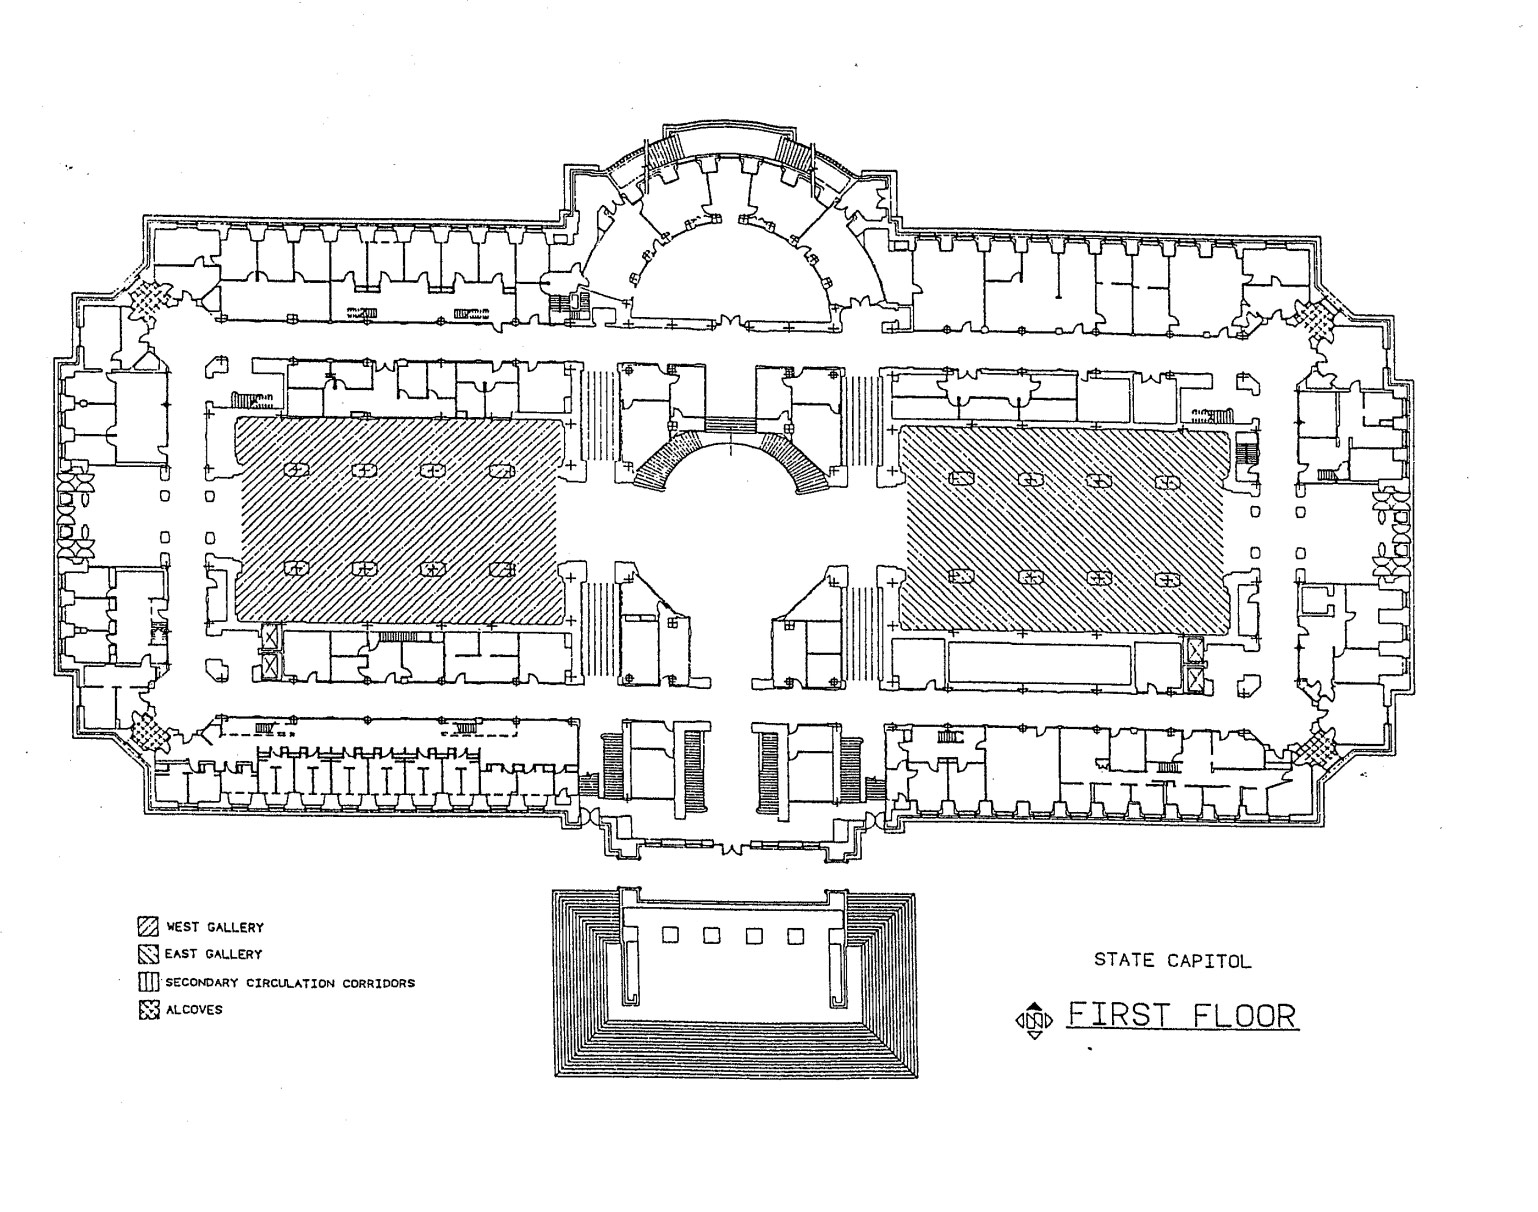 First Floor of the Missouri State Capitol Map